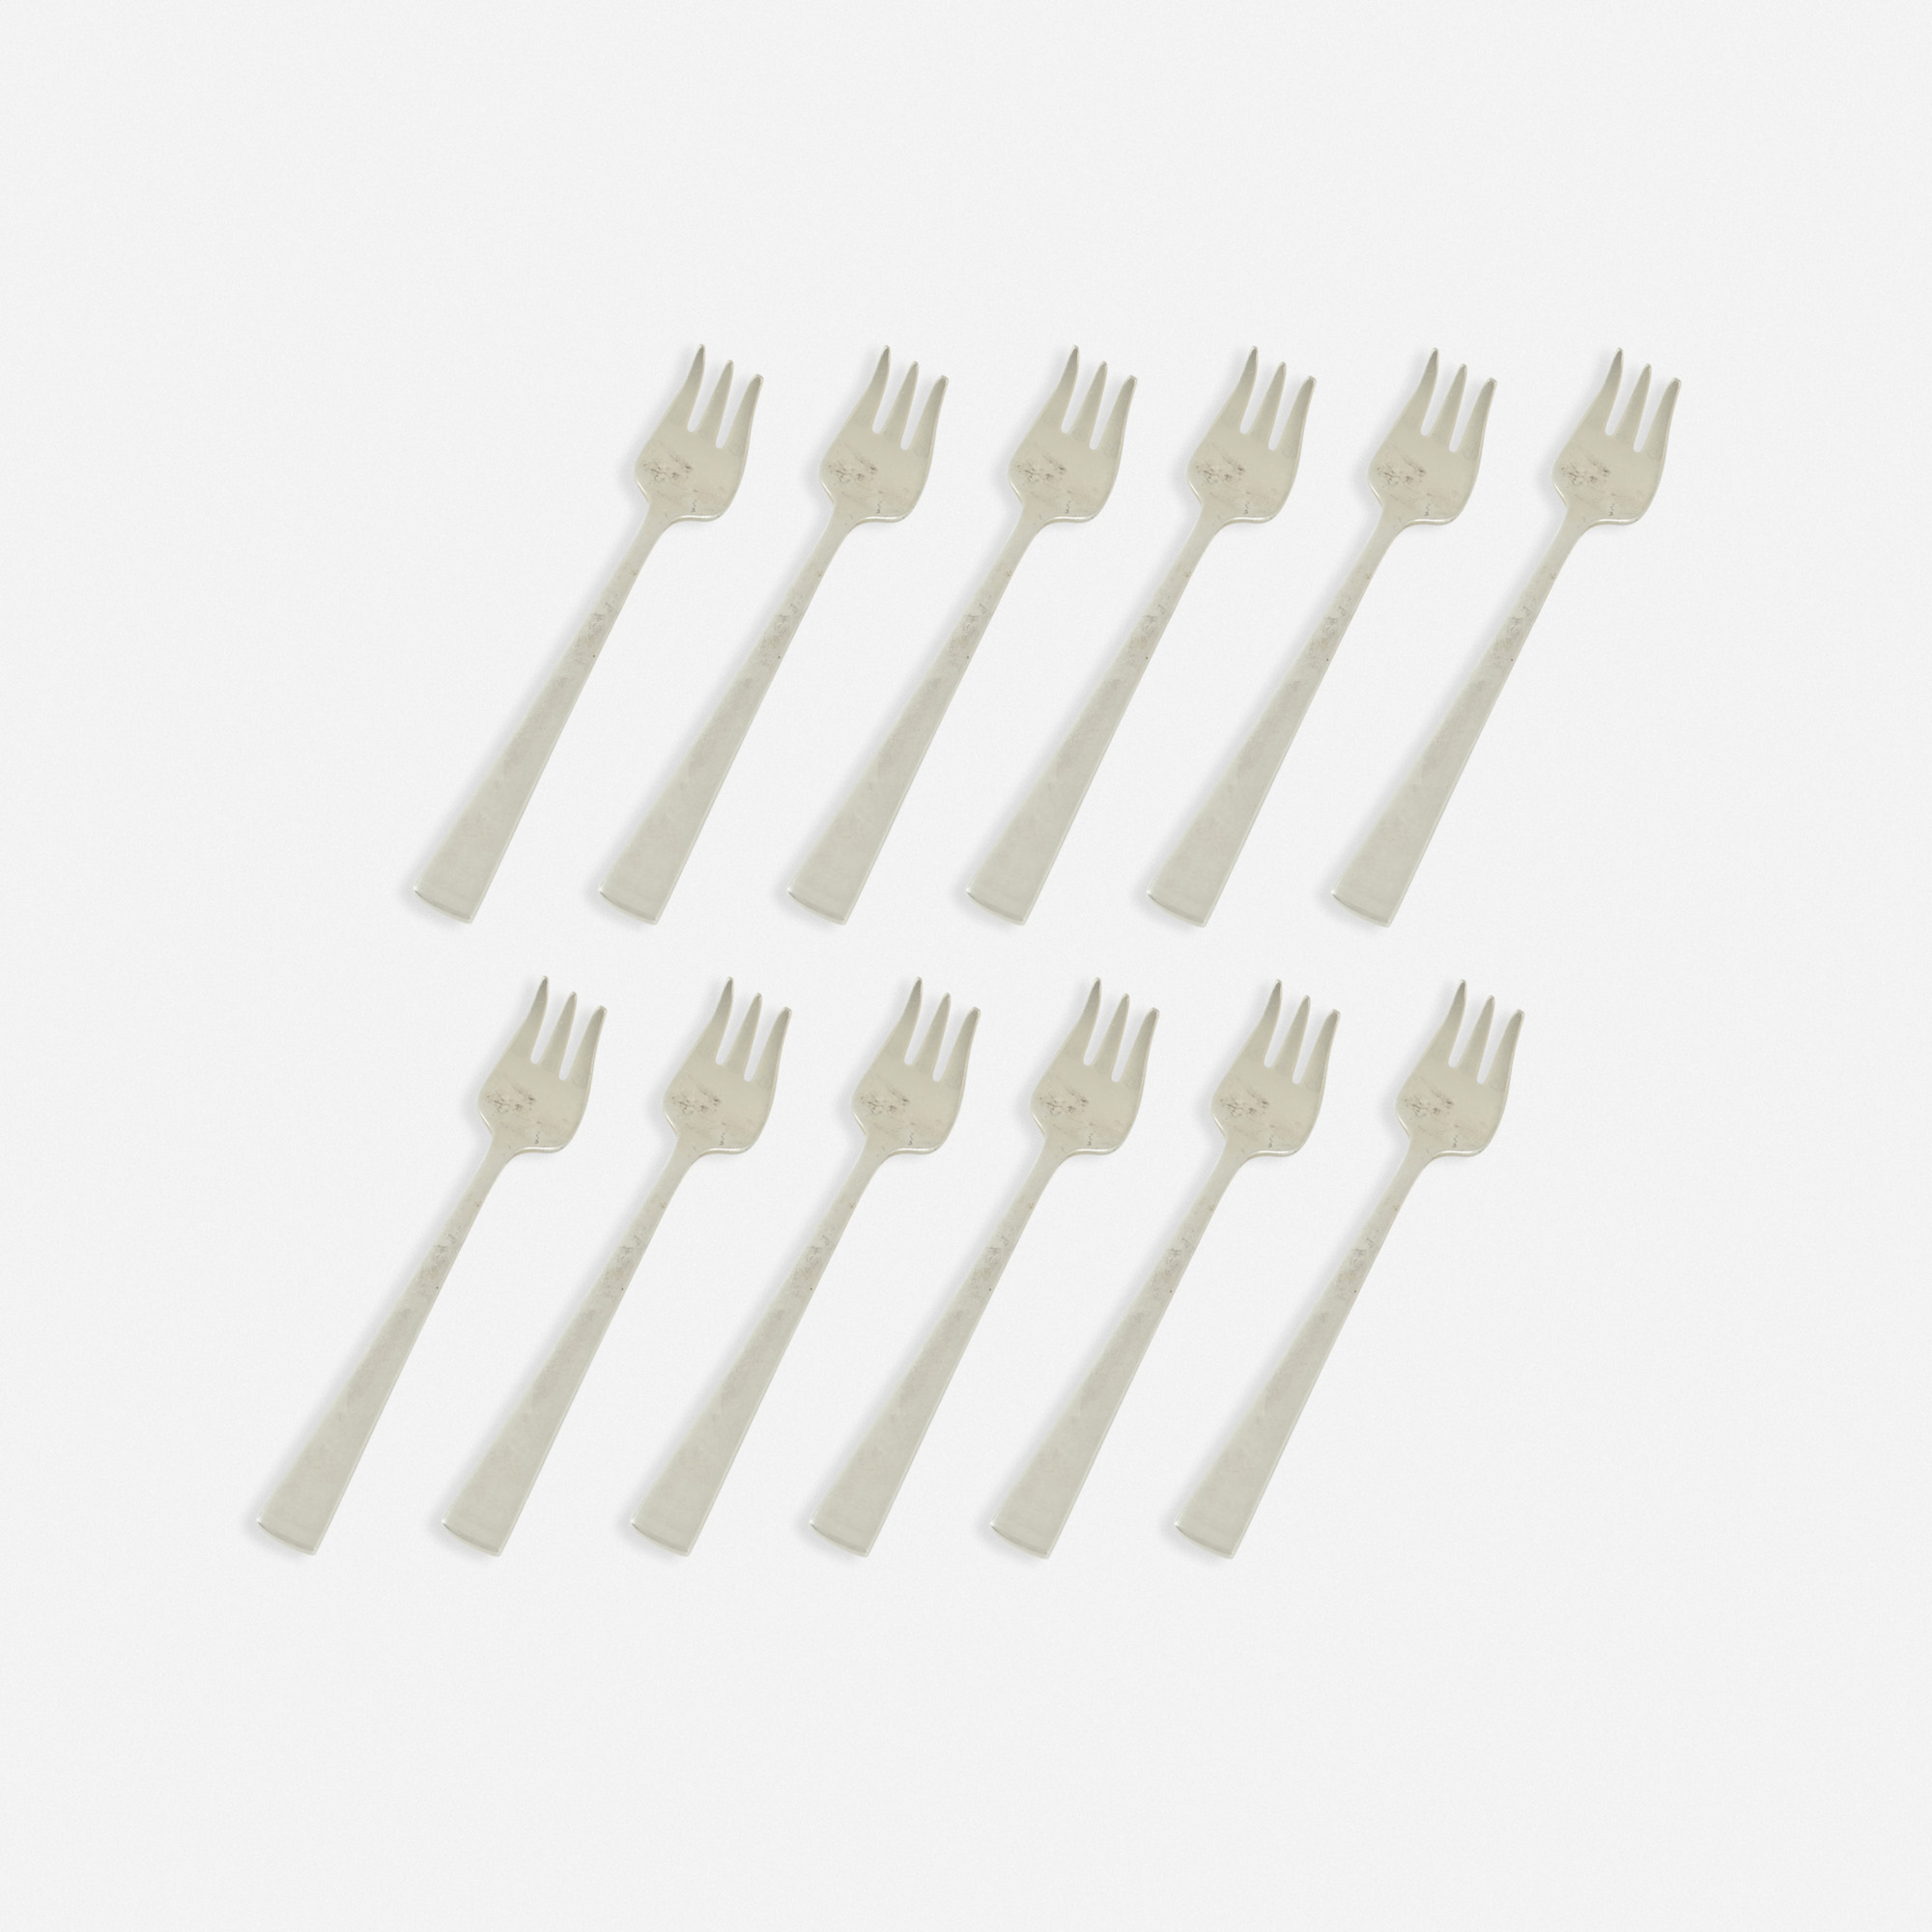 342: Garth and Ada Louise Huxtable / Oyster forks from The Four Seasons, set of twelve (1 of 1)